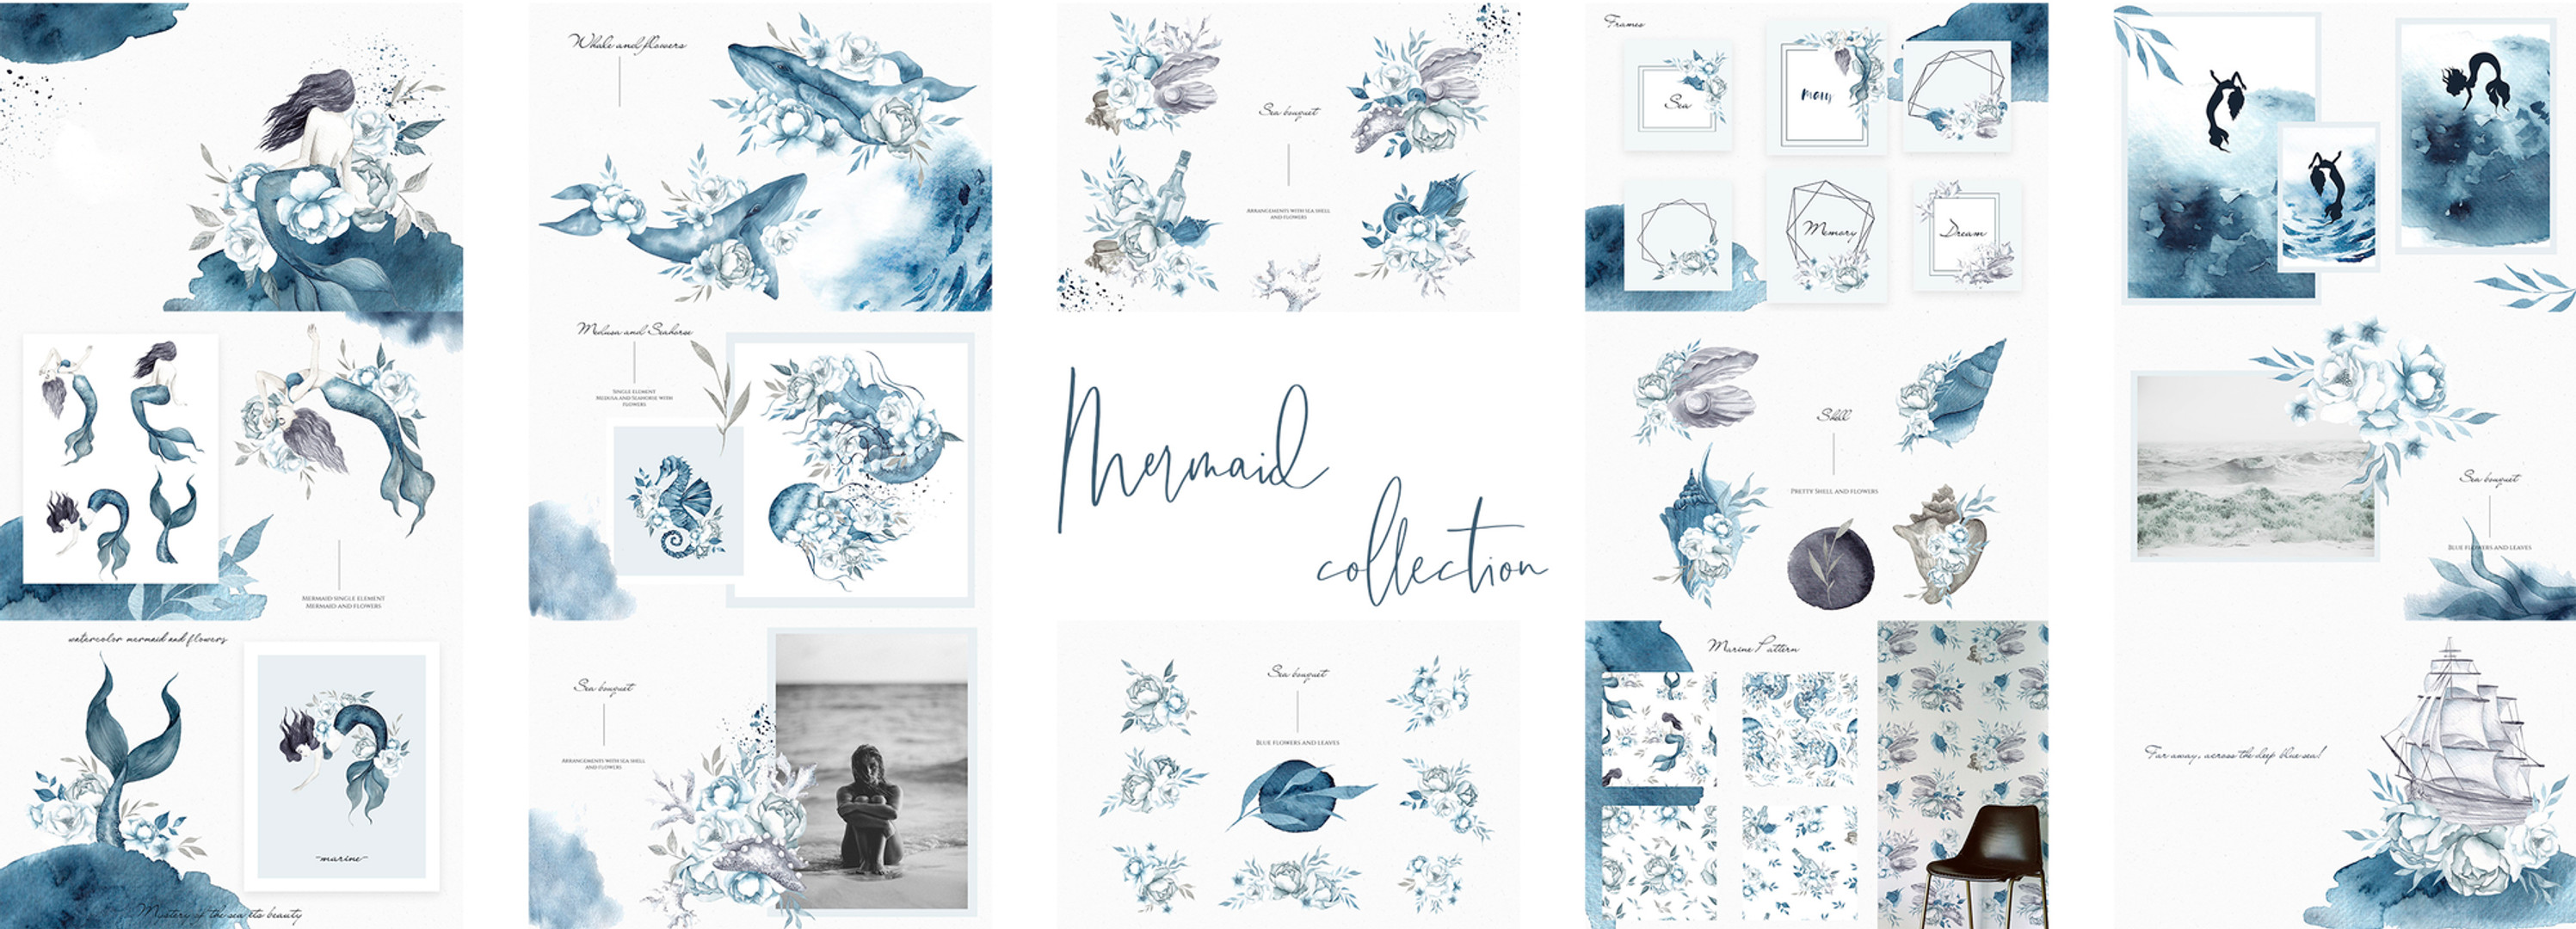 mermaid-collection.jpg